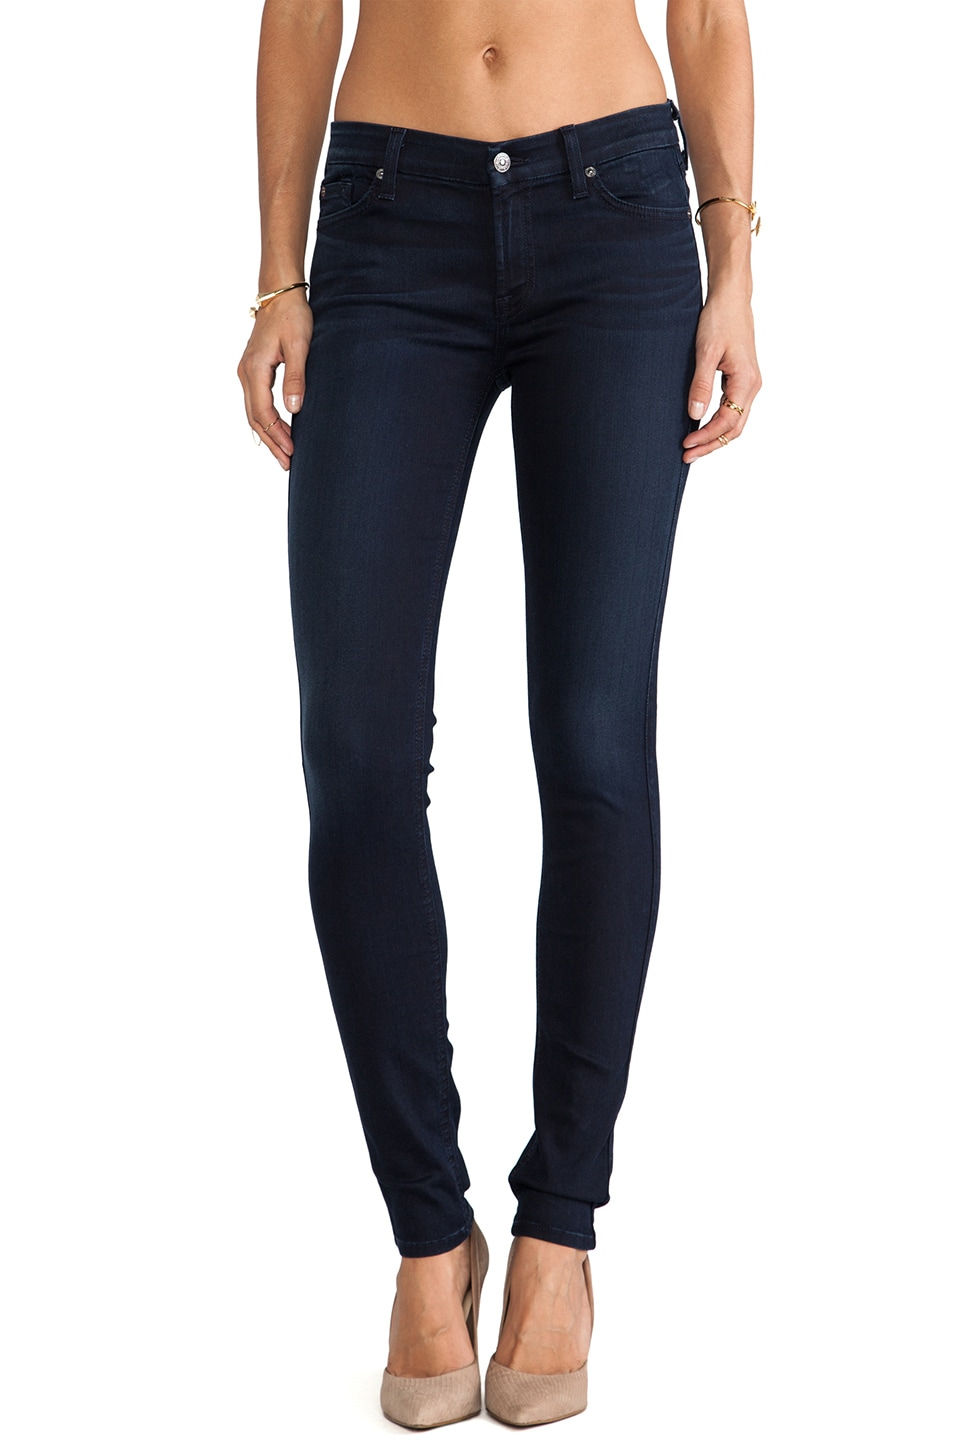 7 For All Mankind Skinny in Dark Steel Blue